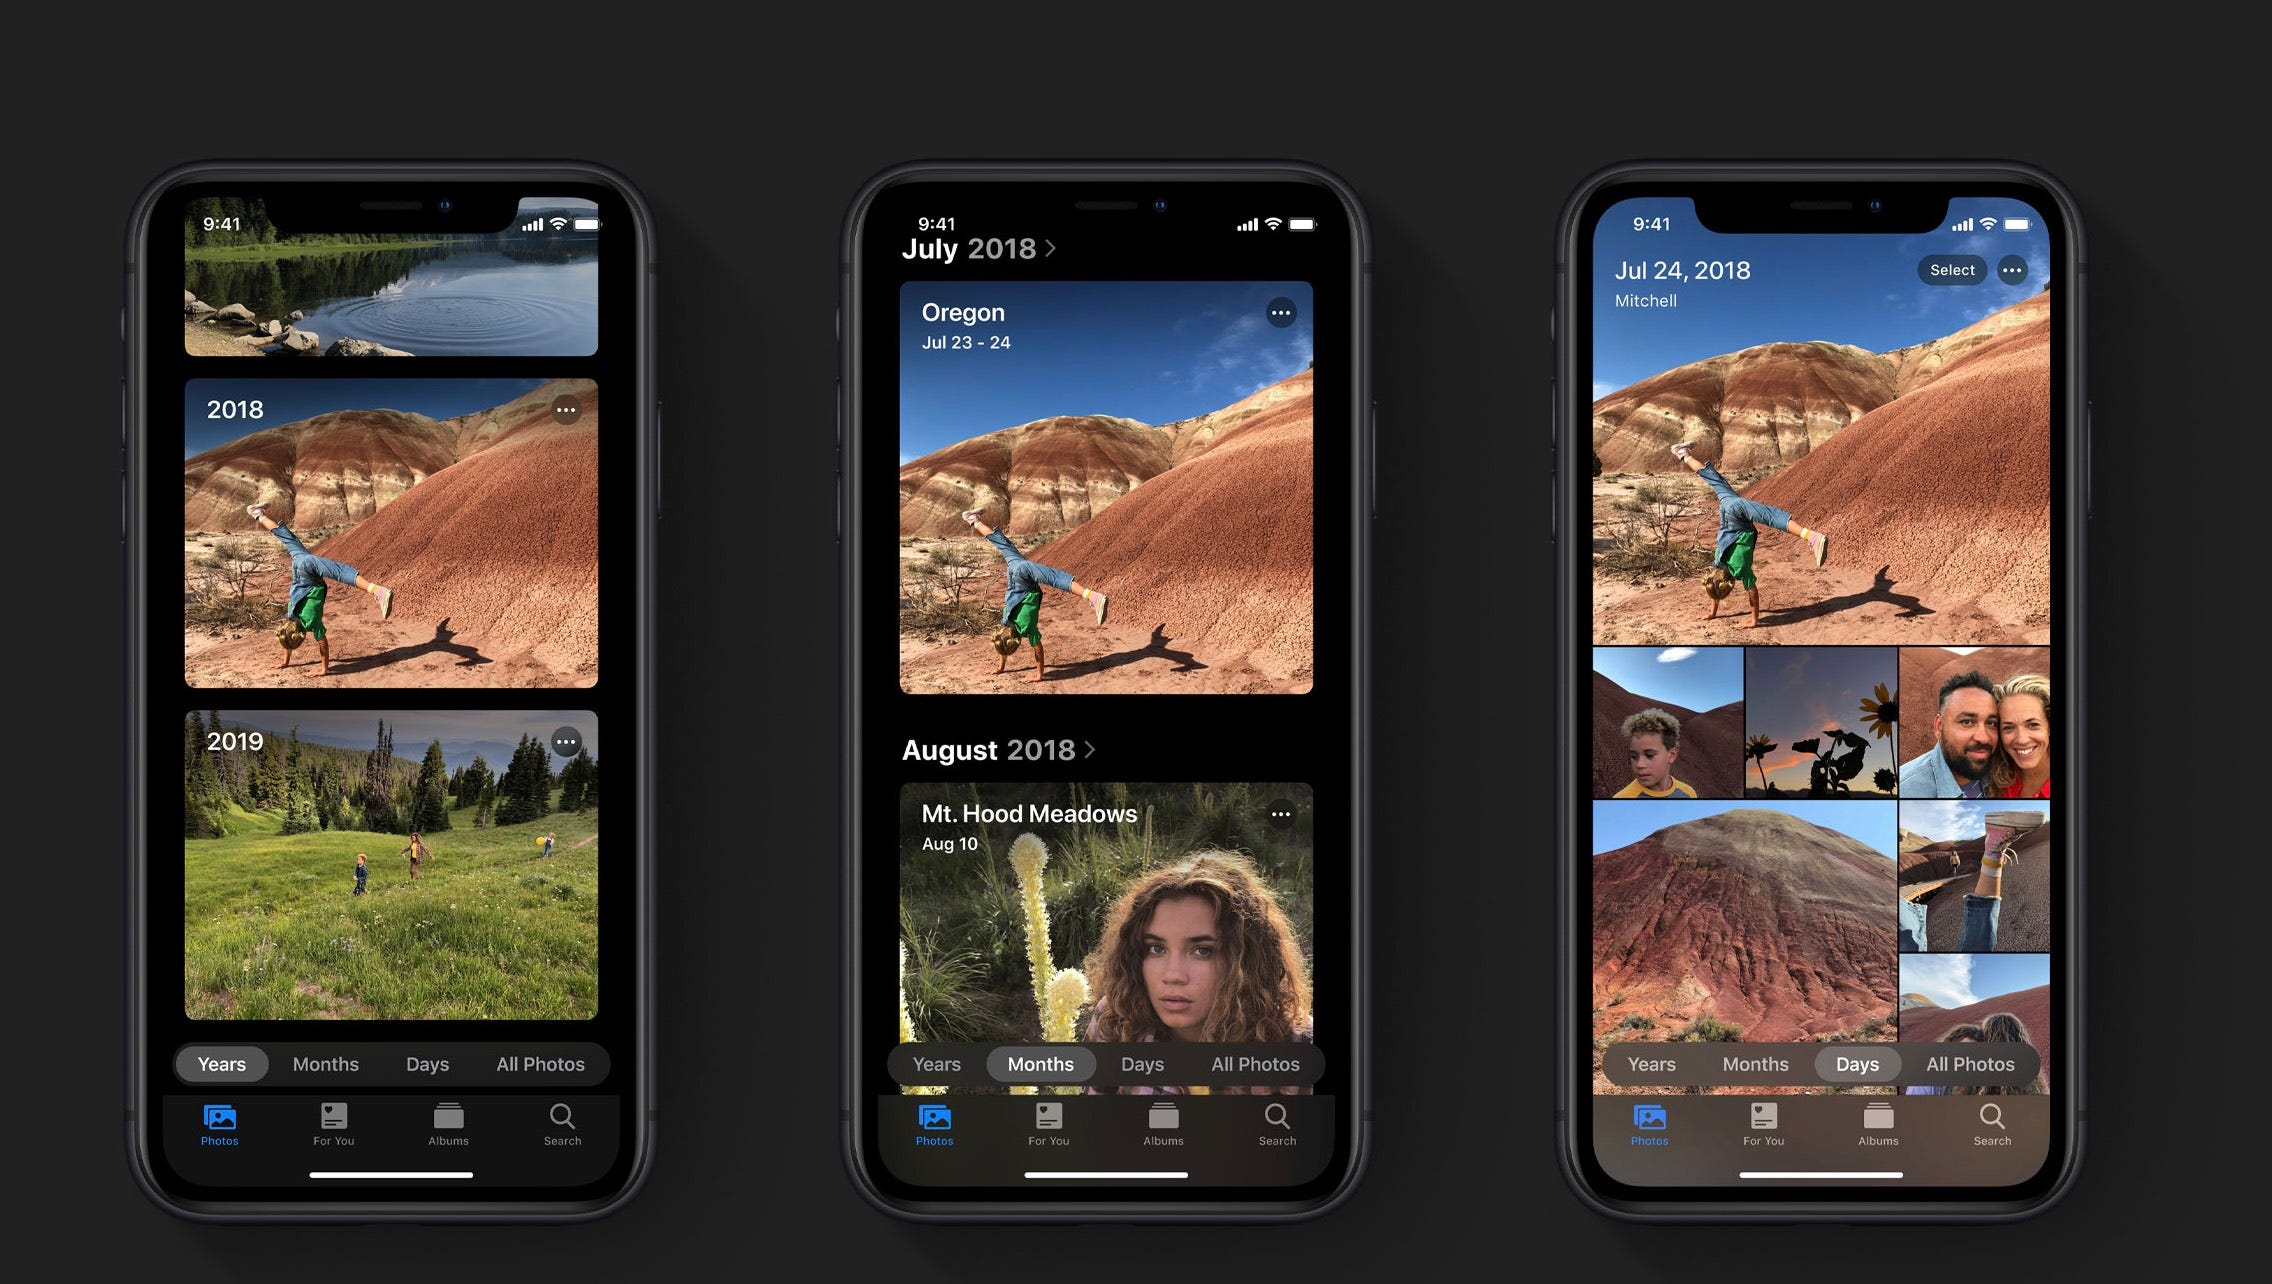 Apple's iOS13 offers free updates, photo editing tools and new looks